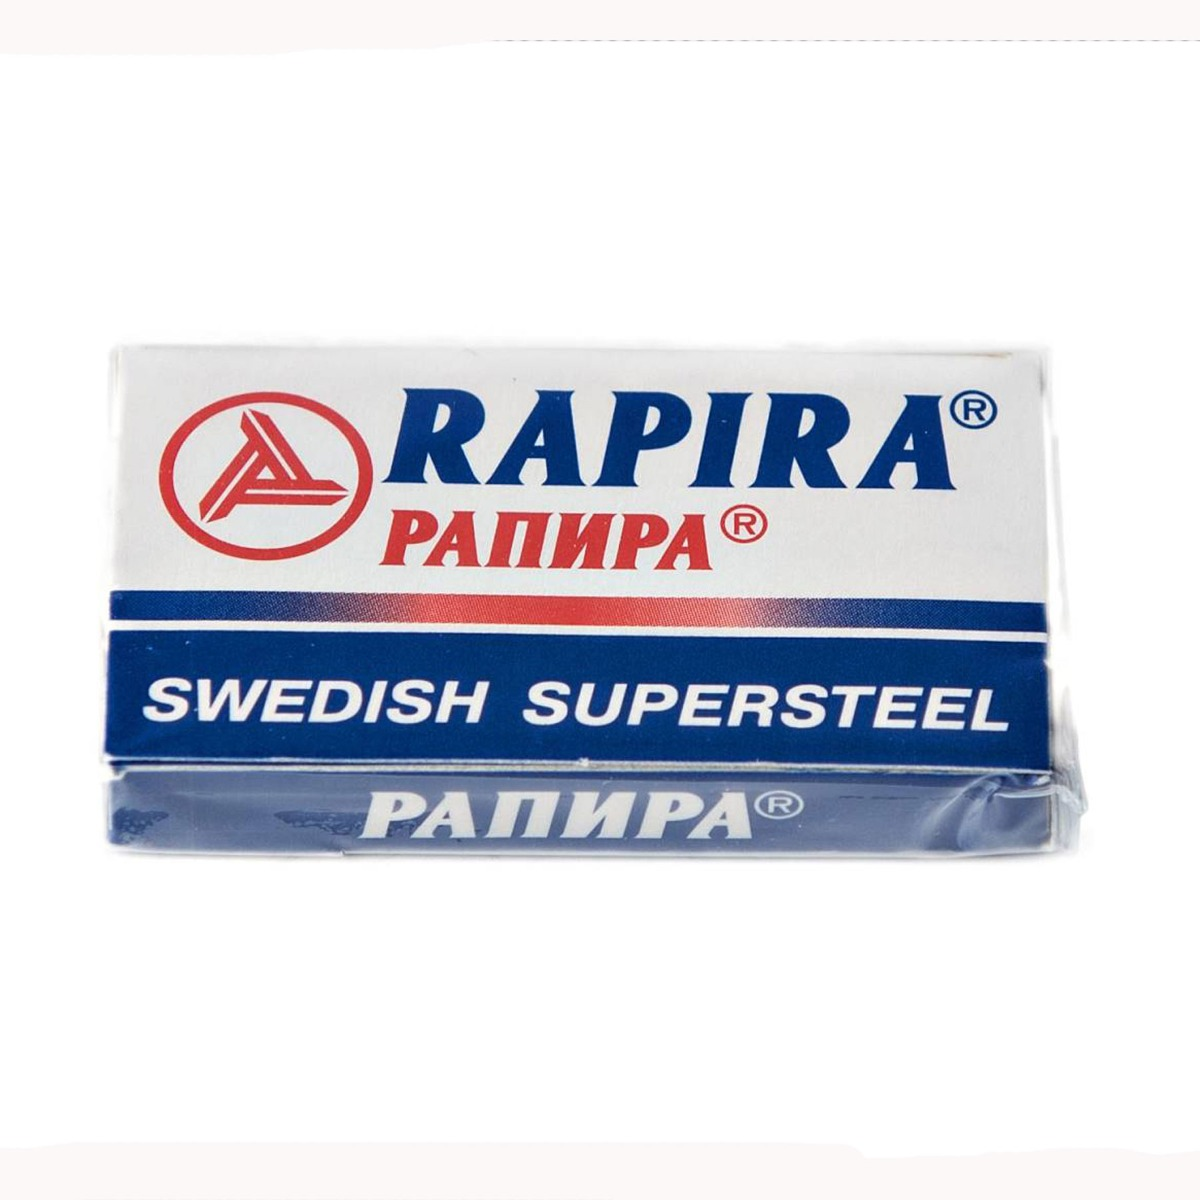 Rapira Swedish Super Steel Safety Razor Blades 5 Pack